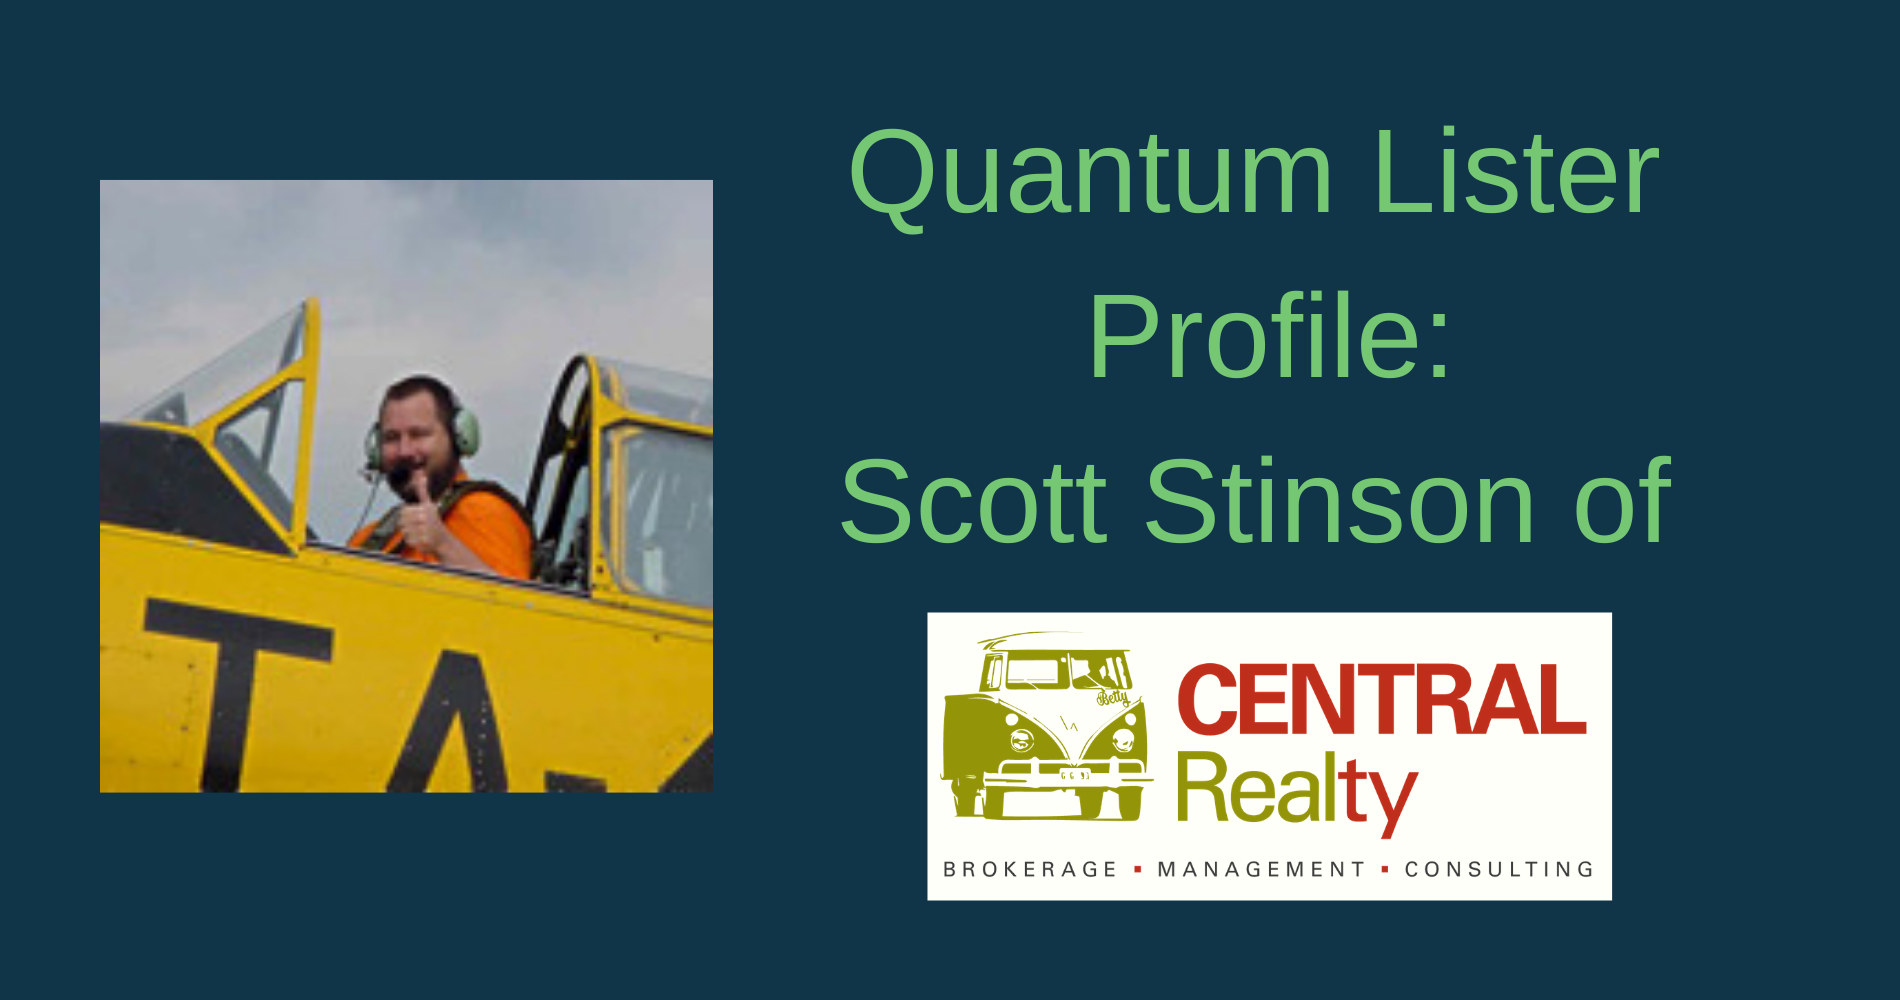 Quantum Lister Profile: Scott Stinson of Central Realty